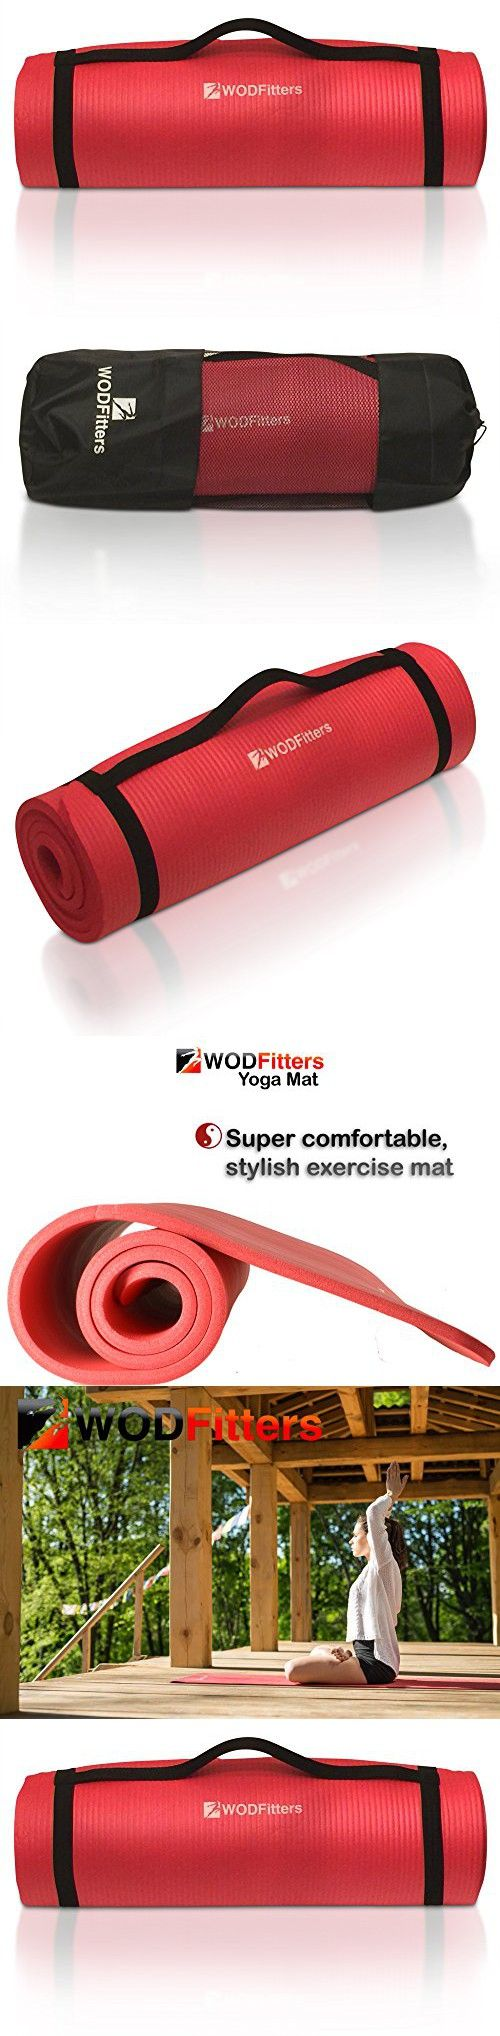 Yoga Pilates Exercise Workout Mat By WODFitters - ½ '' Thick For Maximum Joint Protection & Comfort - Slip Resistant, Hypoallergenic - Carrying Strap - Bonus Carrying Bag(Red)